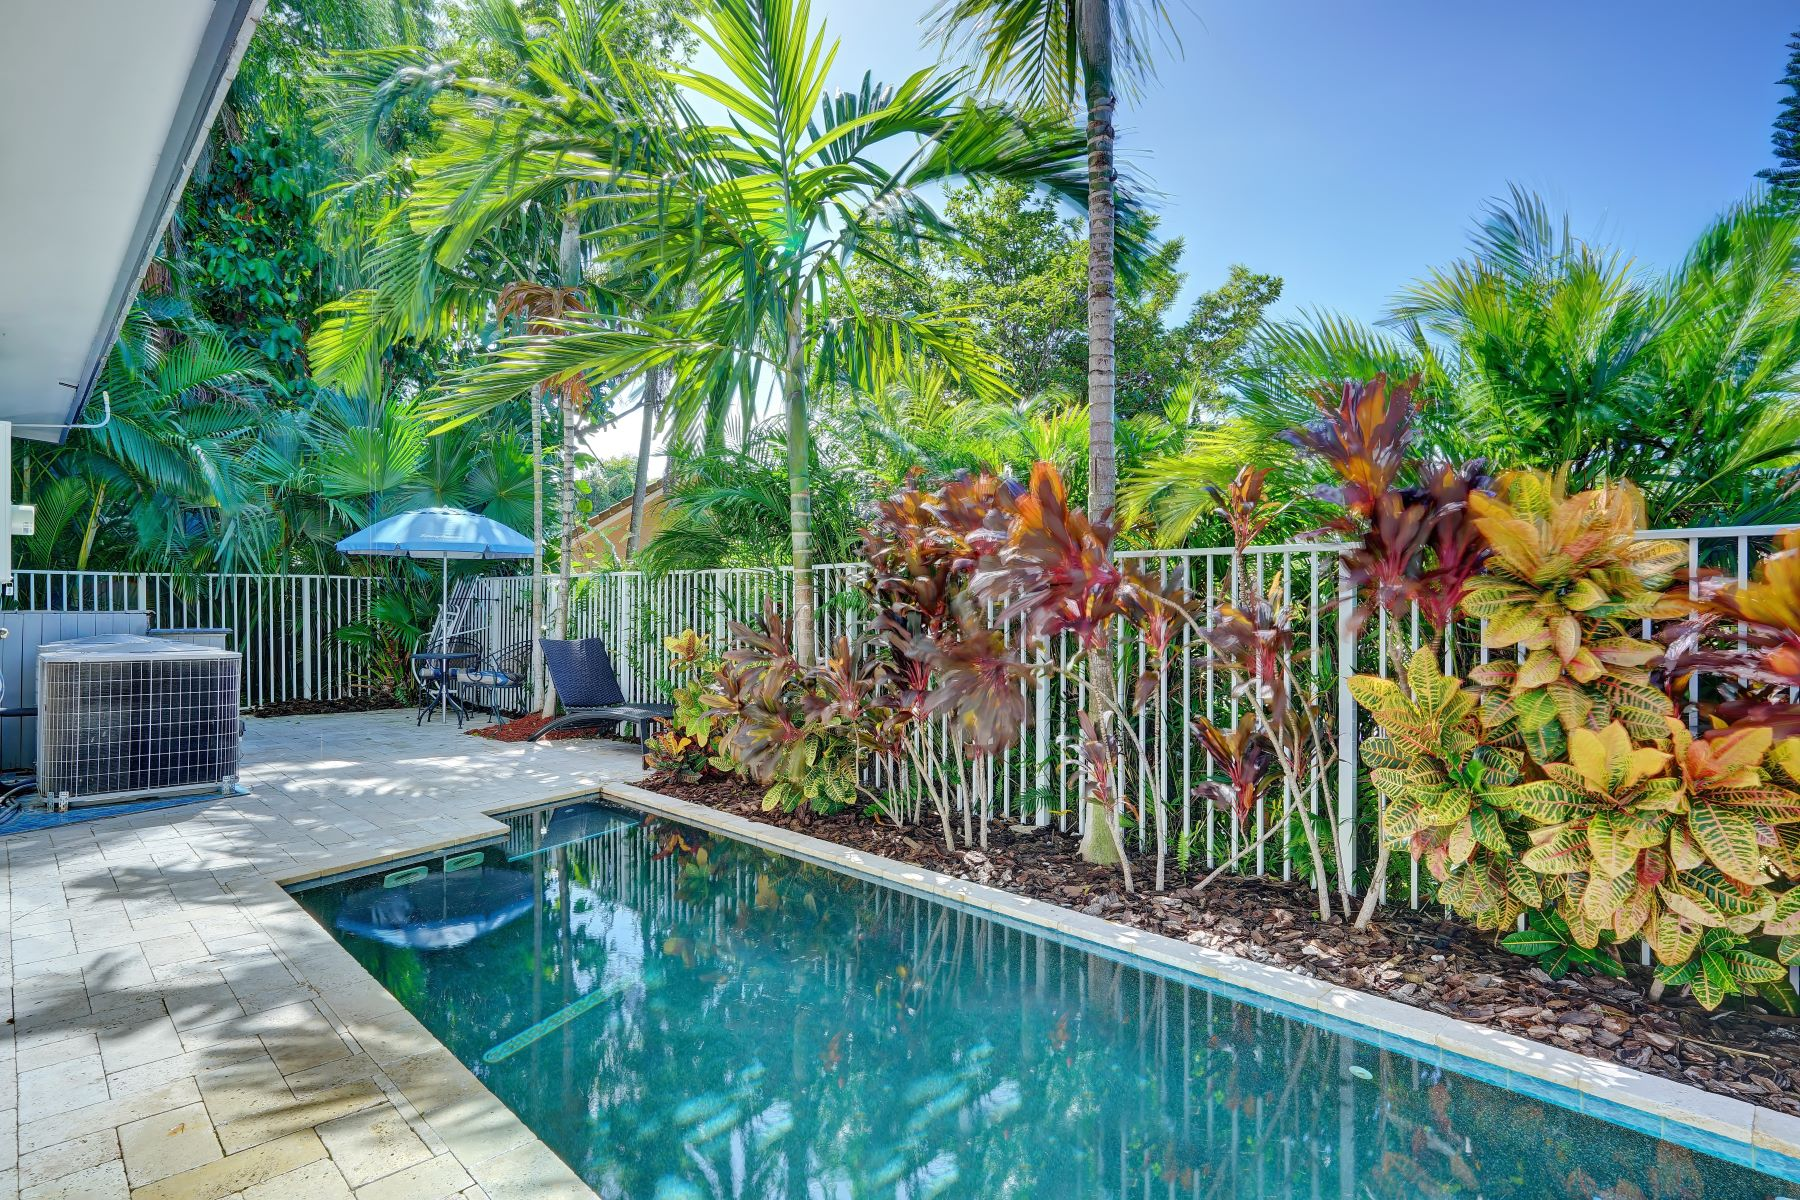 Townhouse for Sale at 1722 Ne 5th Ct 1722 Ne 5th Ct 1722, Fort Lauderdale, Florida, 33301 United States